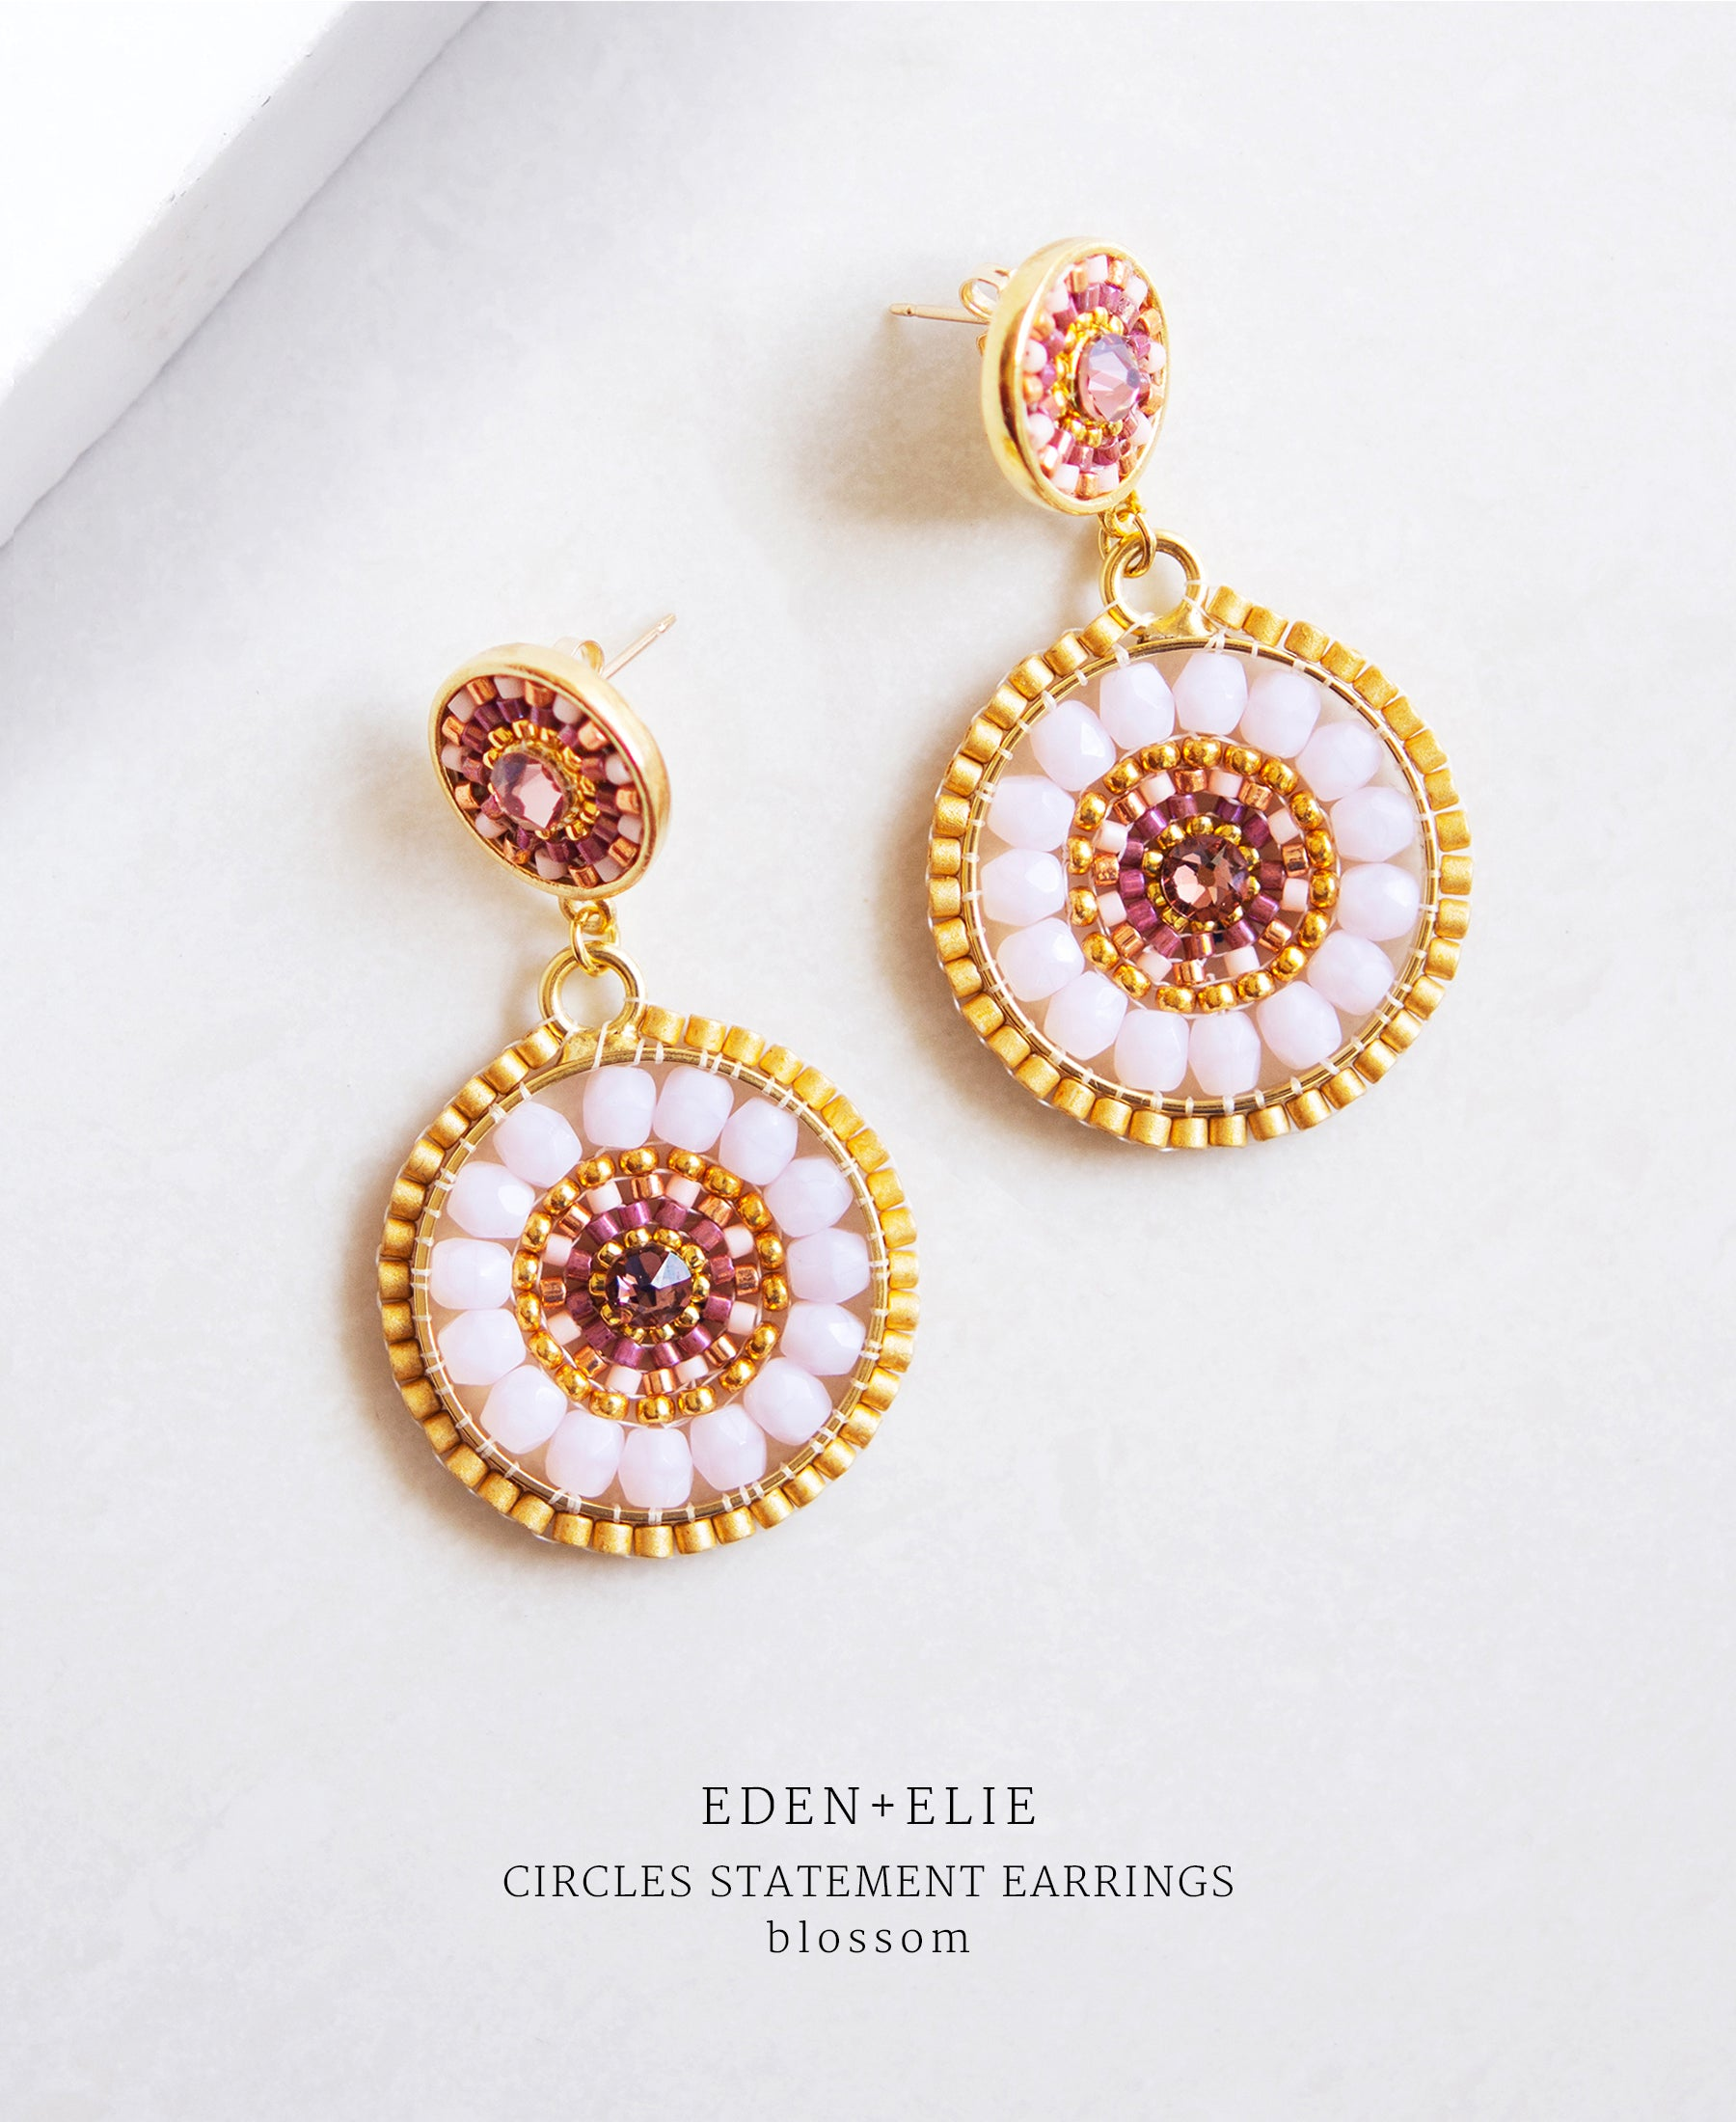 EDEN + ELIE double circle statement drop earrings - blossom pink